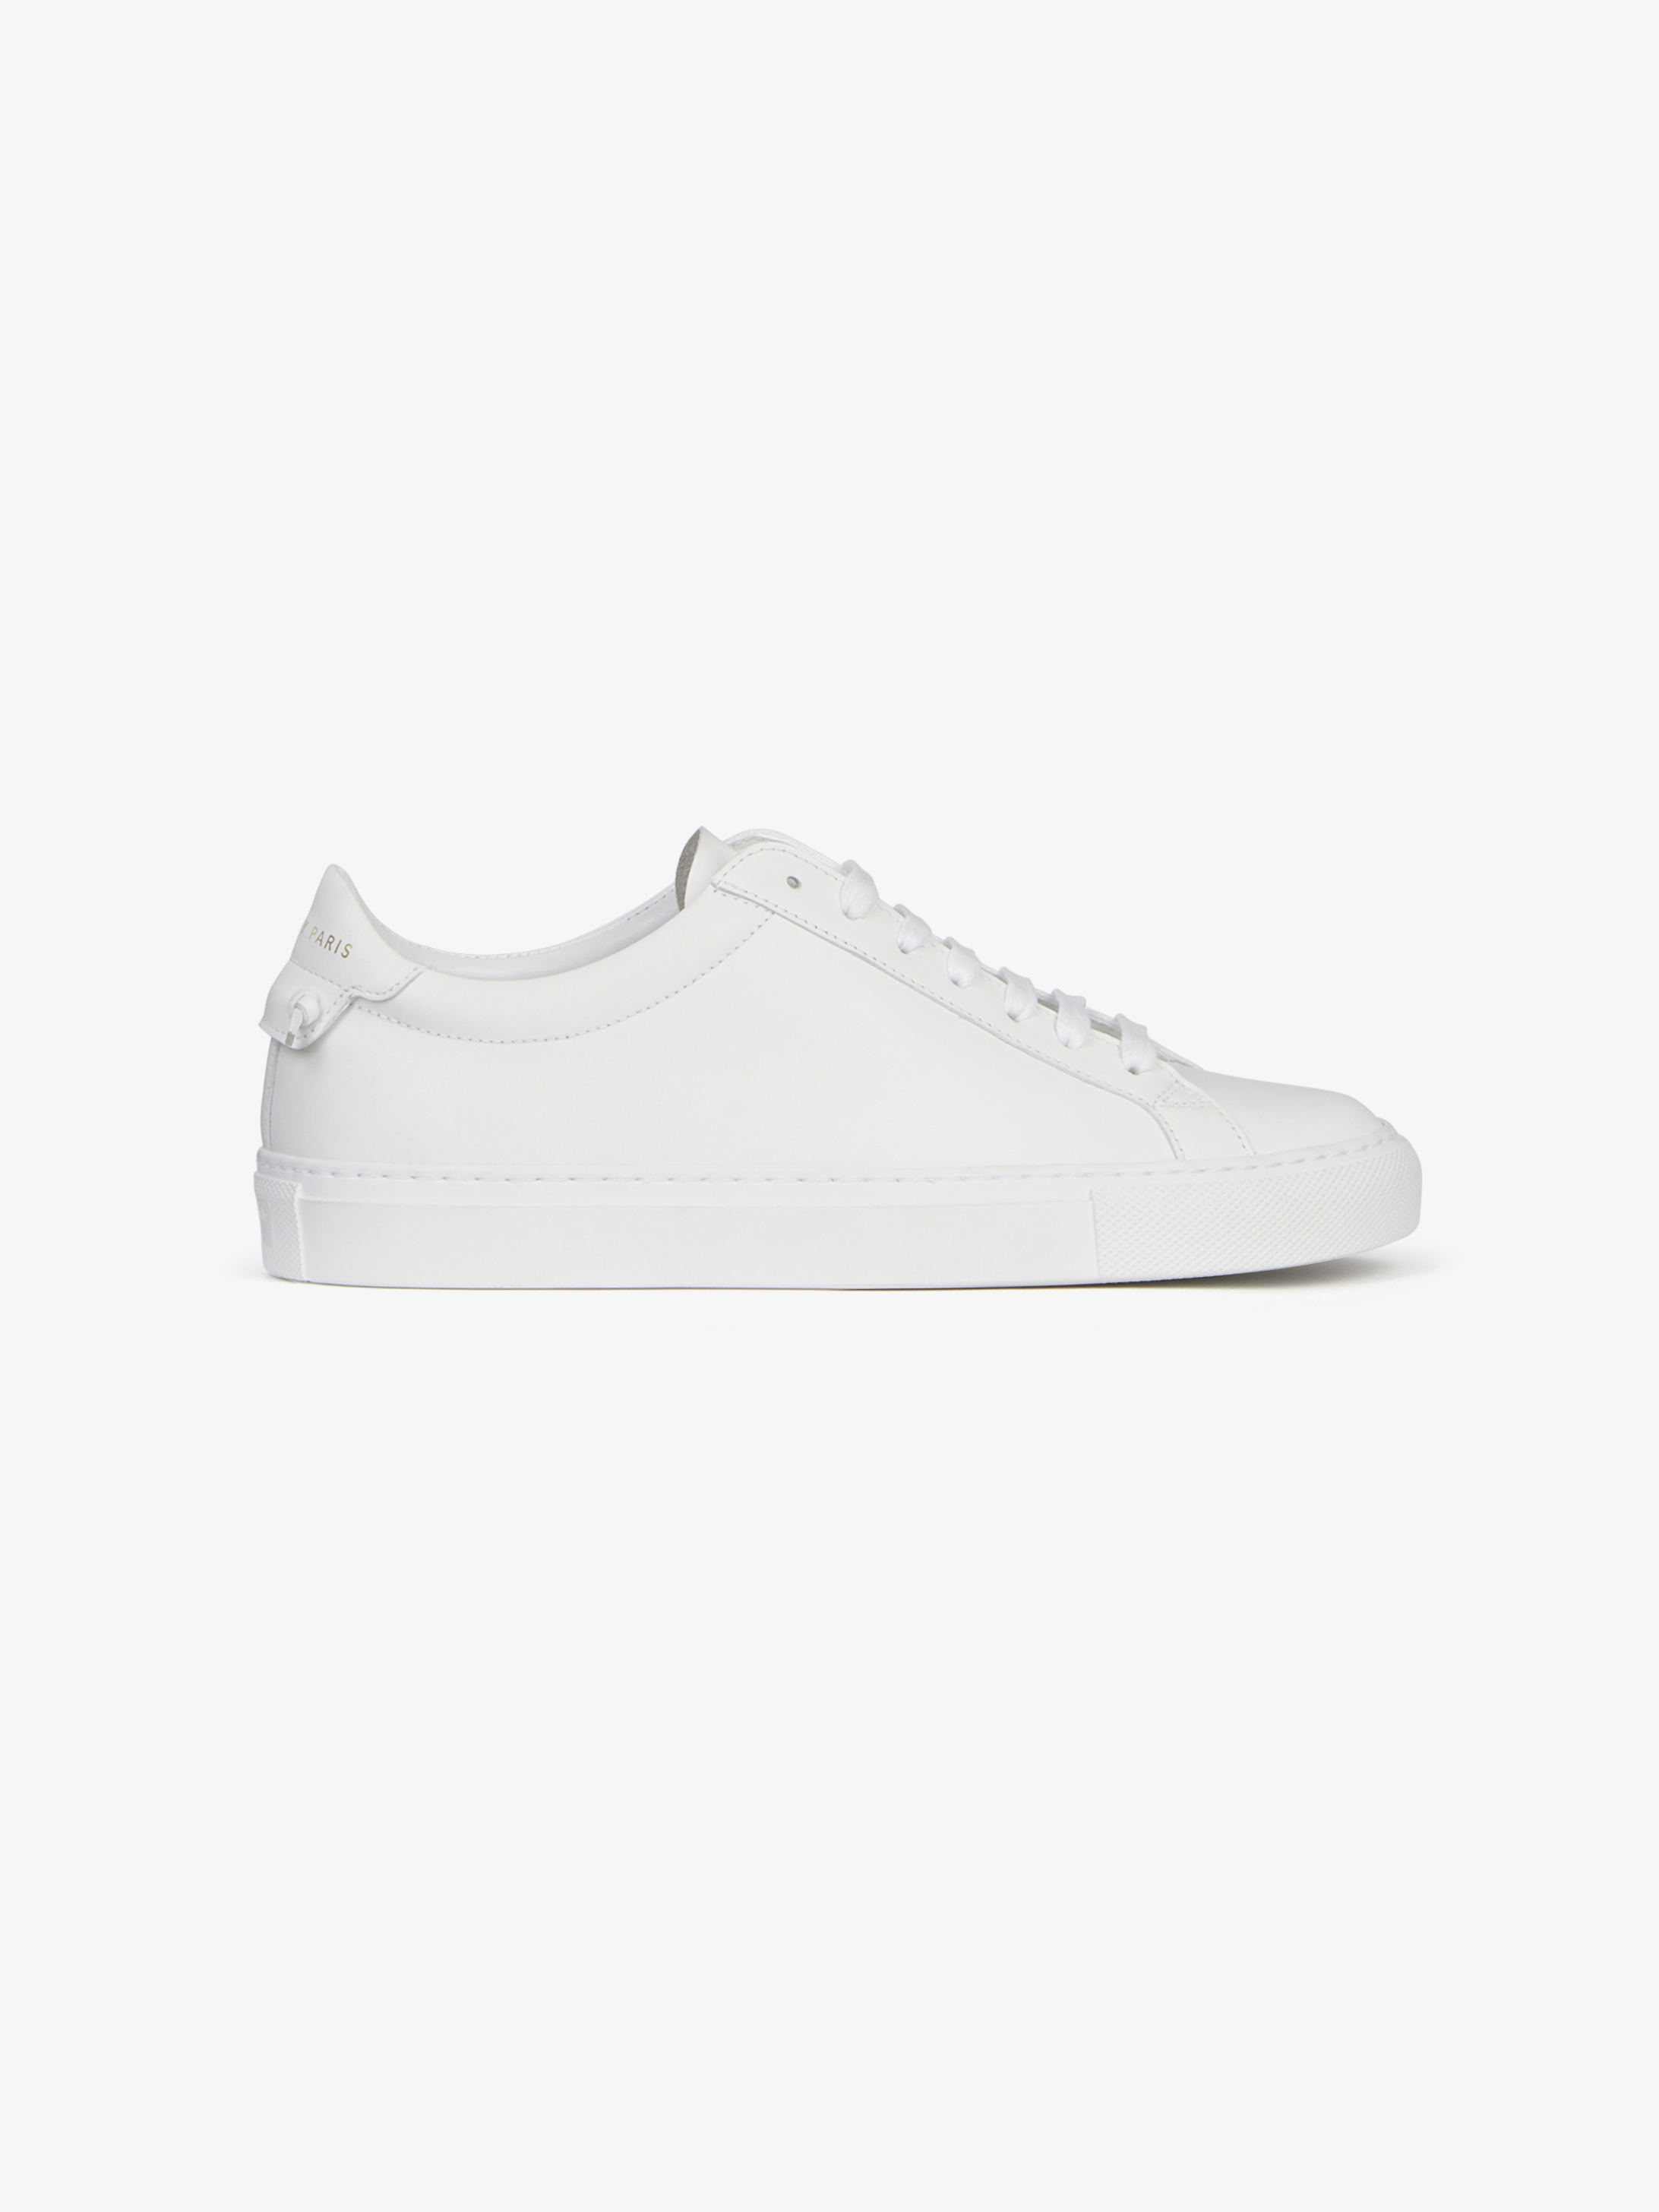 Sneakers in matte leather